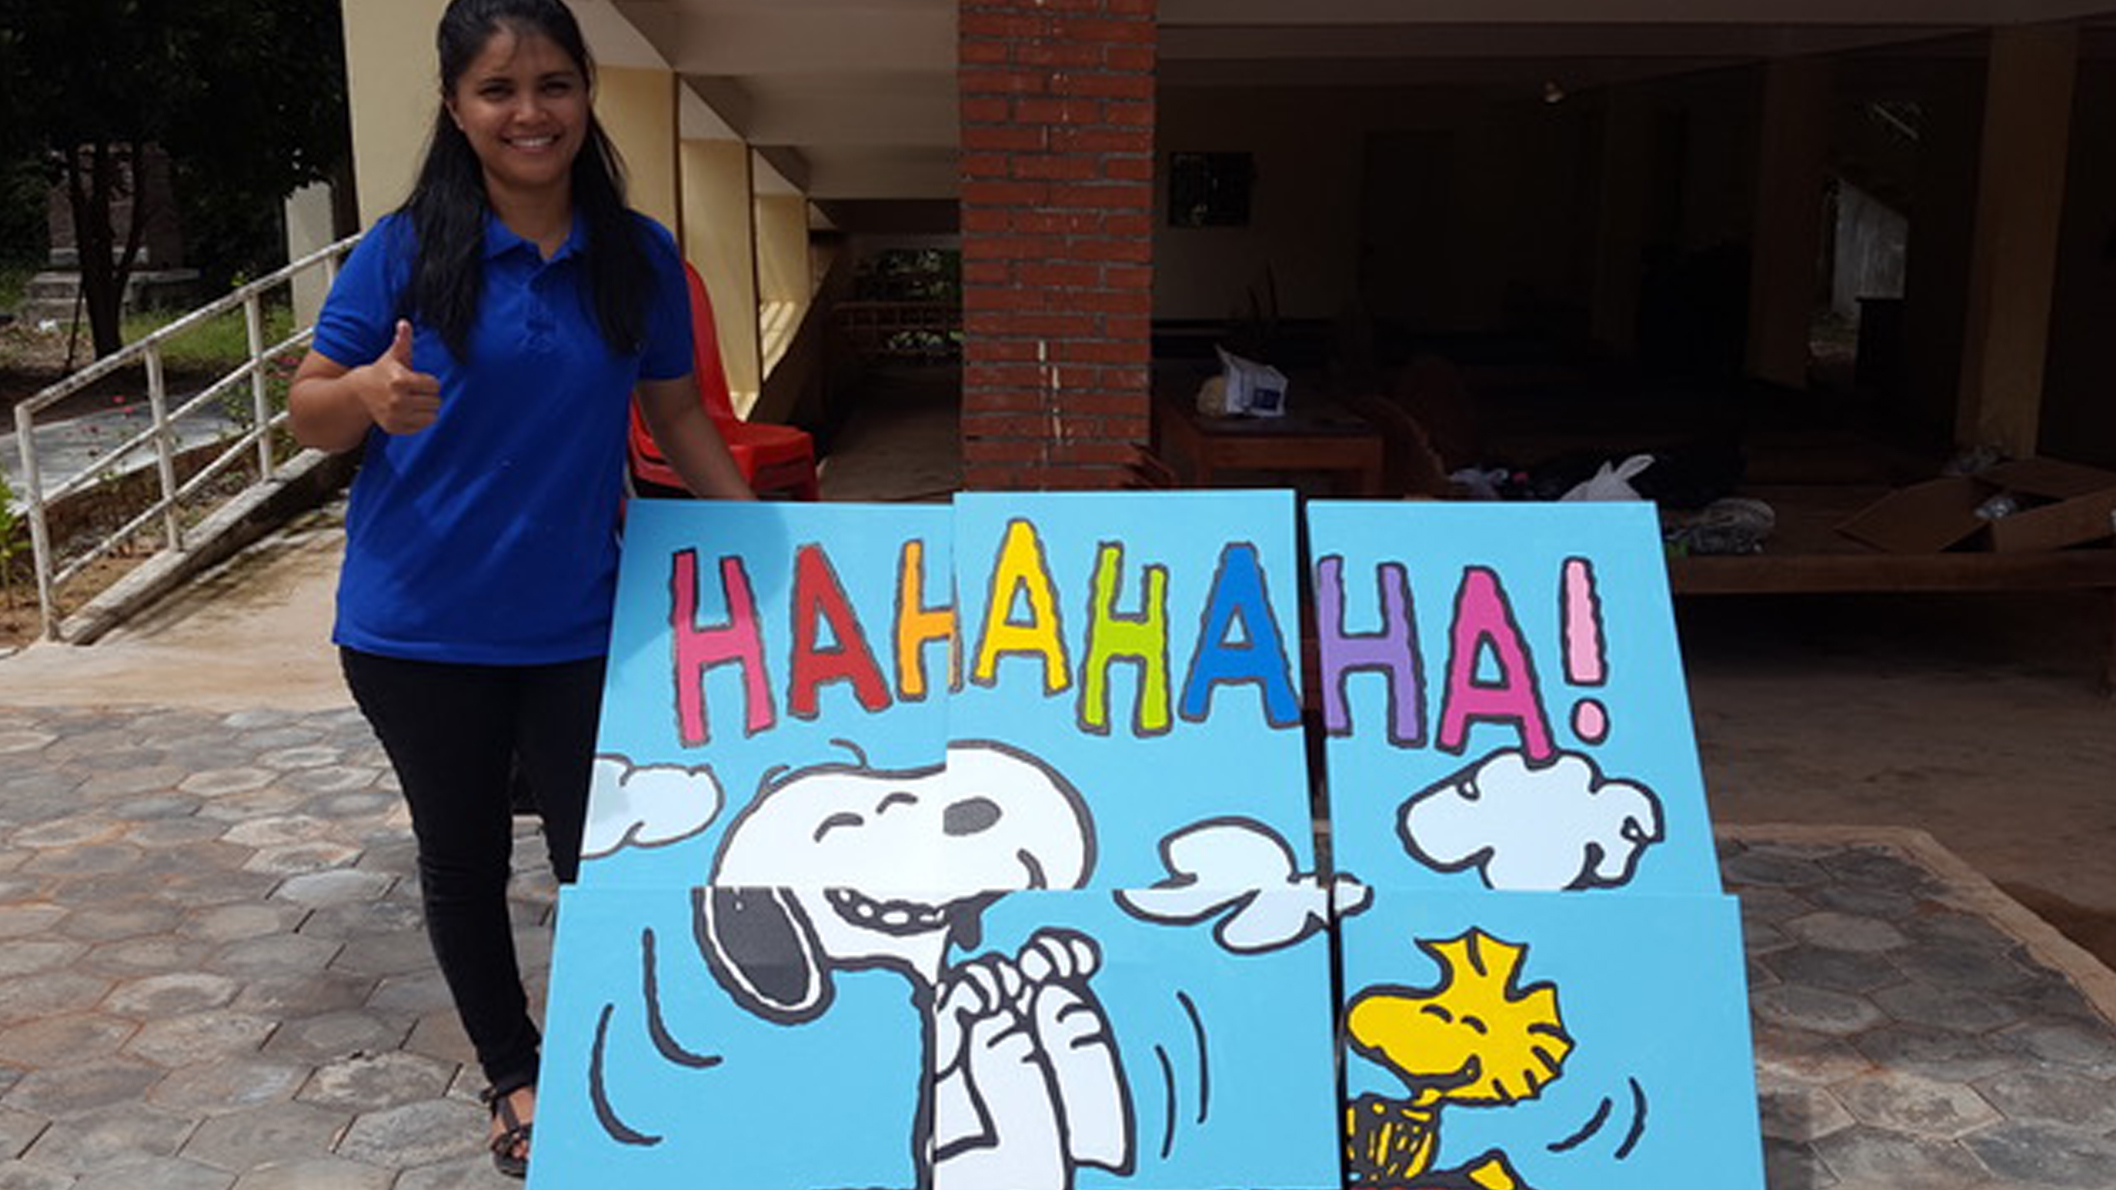 An adult woman standing next to a painted mural of a black and white beagle and yellow bird laughing